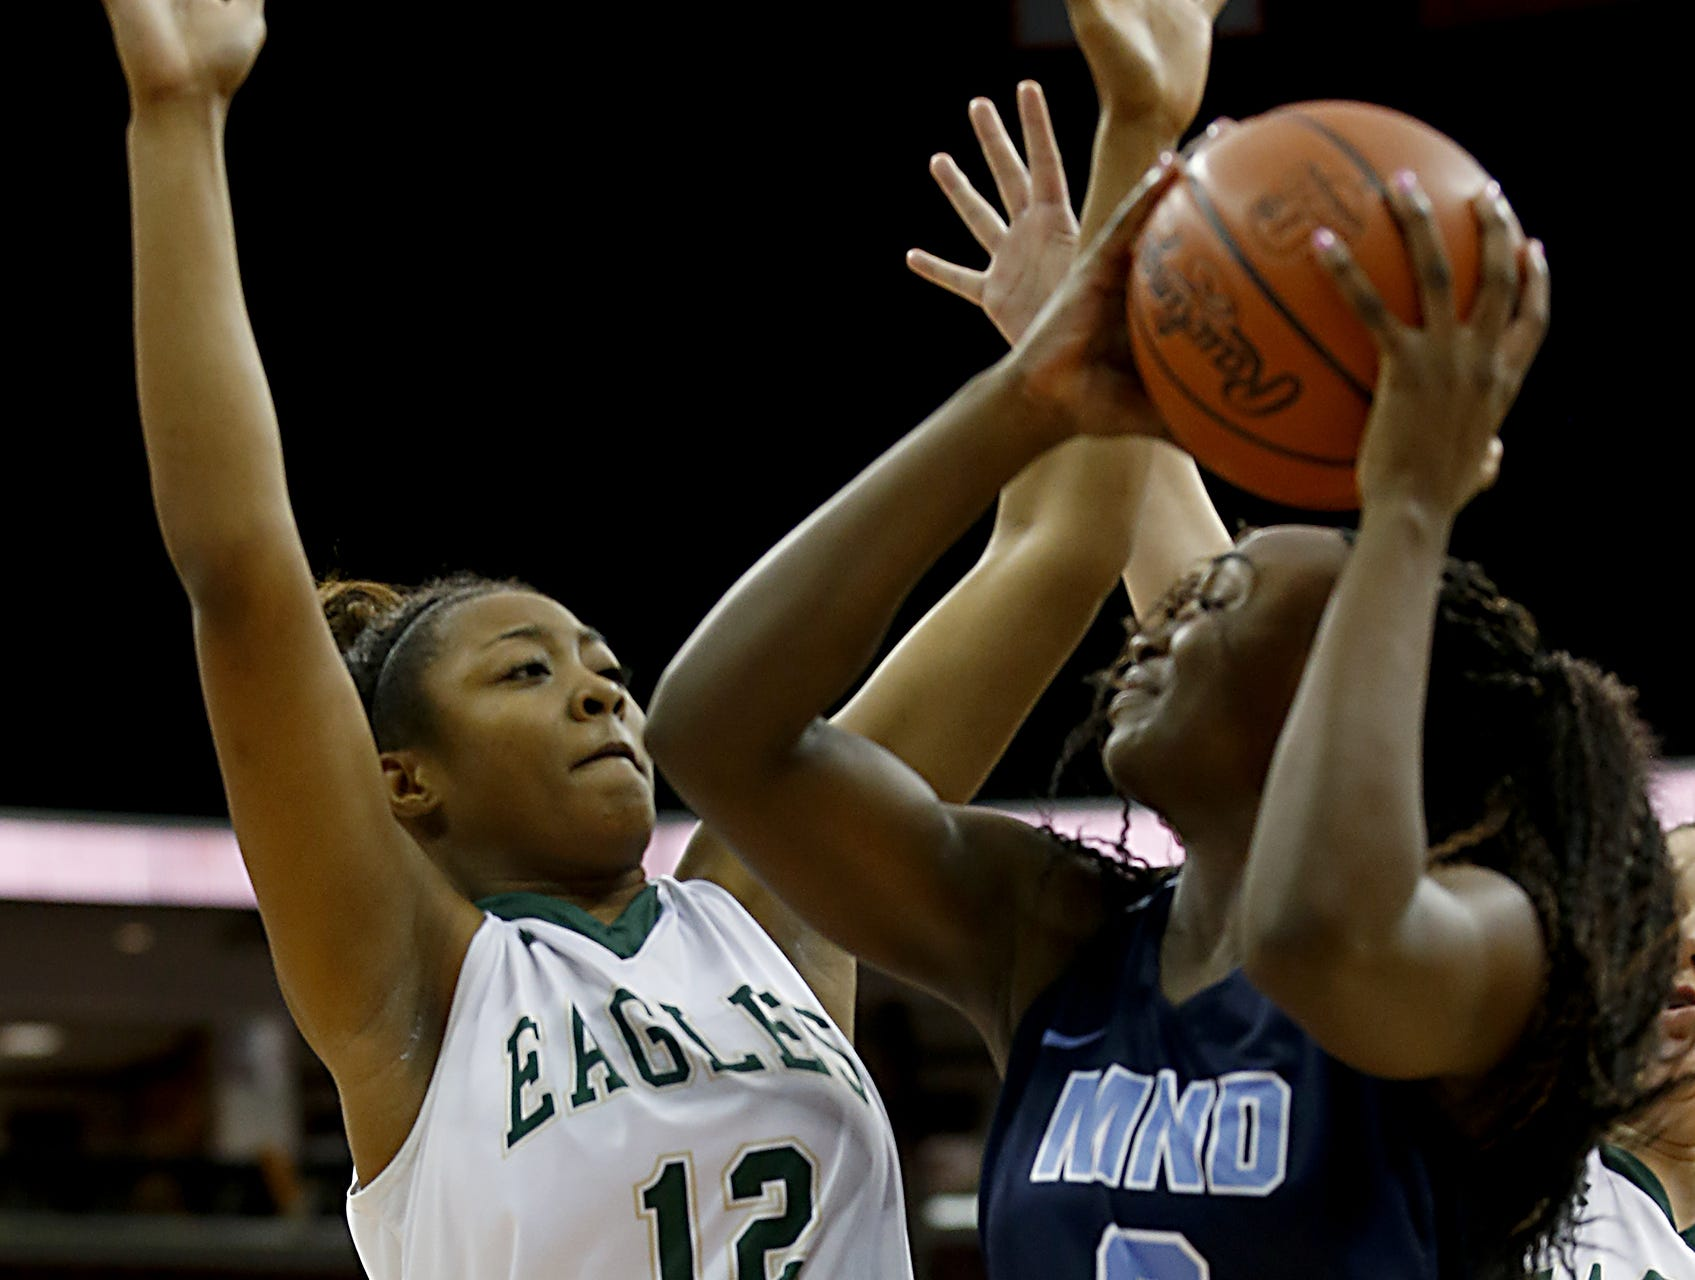 Mount Notre Dame guard K.K. Bransford draws a shooting foul from GlenOak forward Aniyah Hall during their Division I semifinal game in the 44th Annual State Girls Basketball Tournament at the Schottenstein Center in Columbus Friday, March 15, 2019.